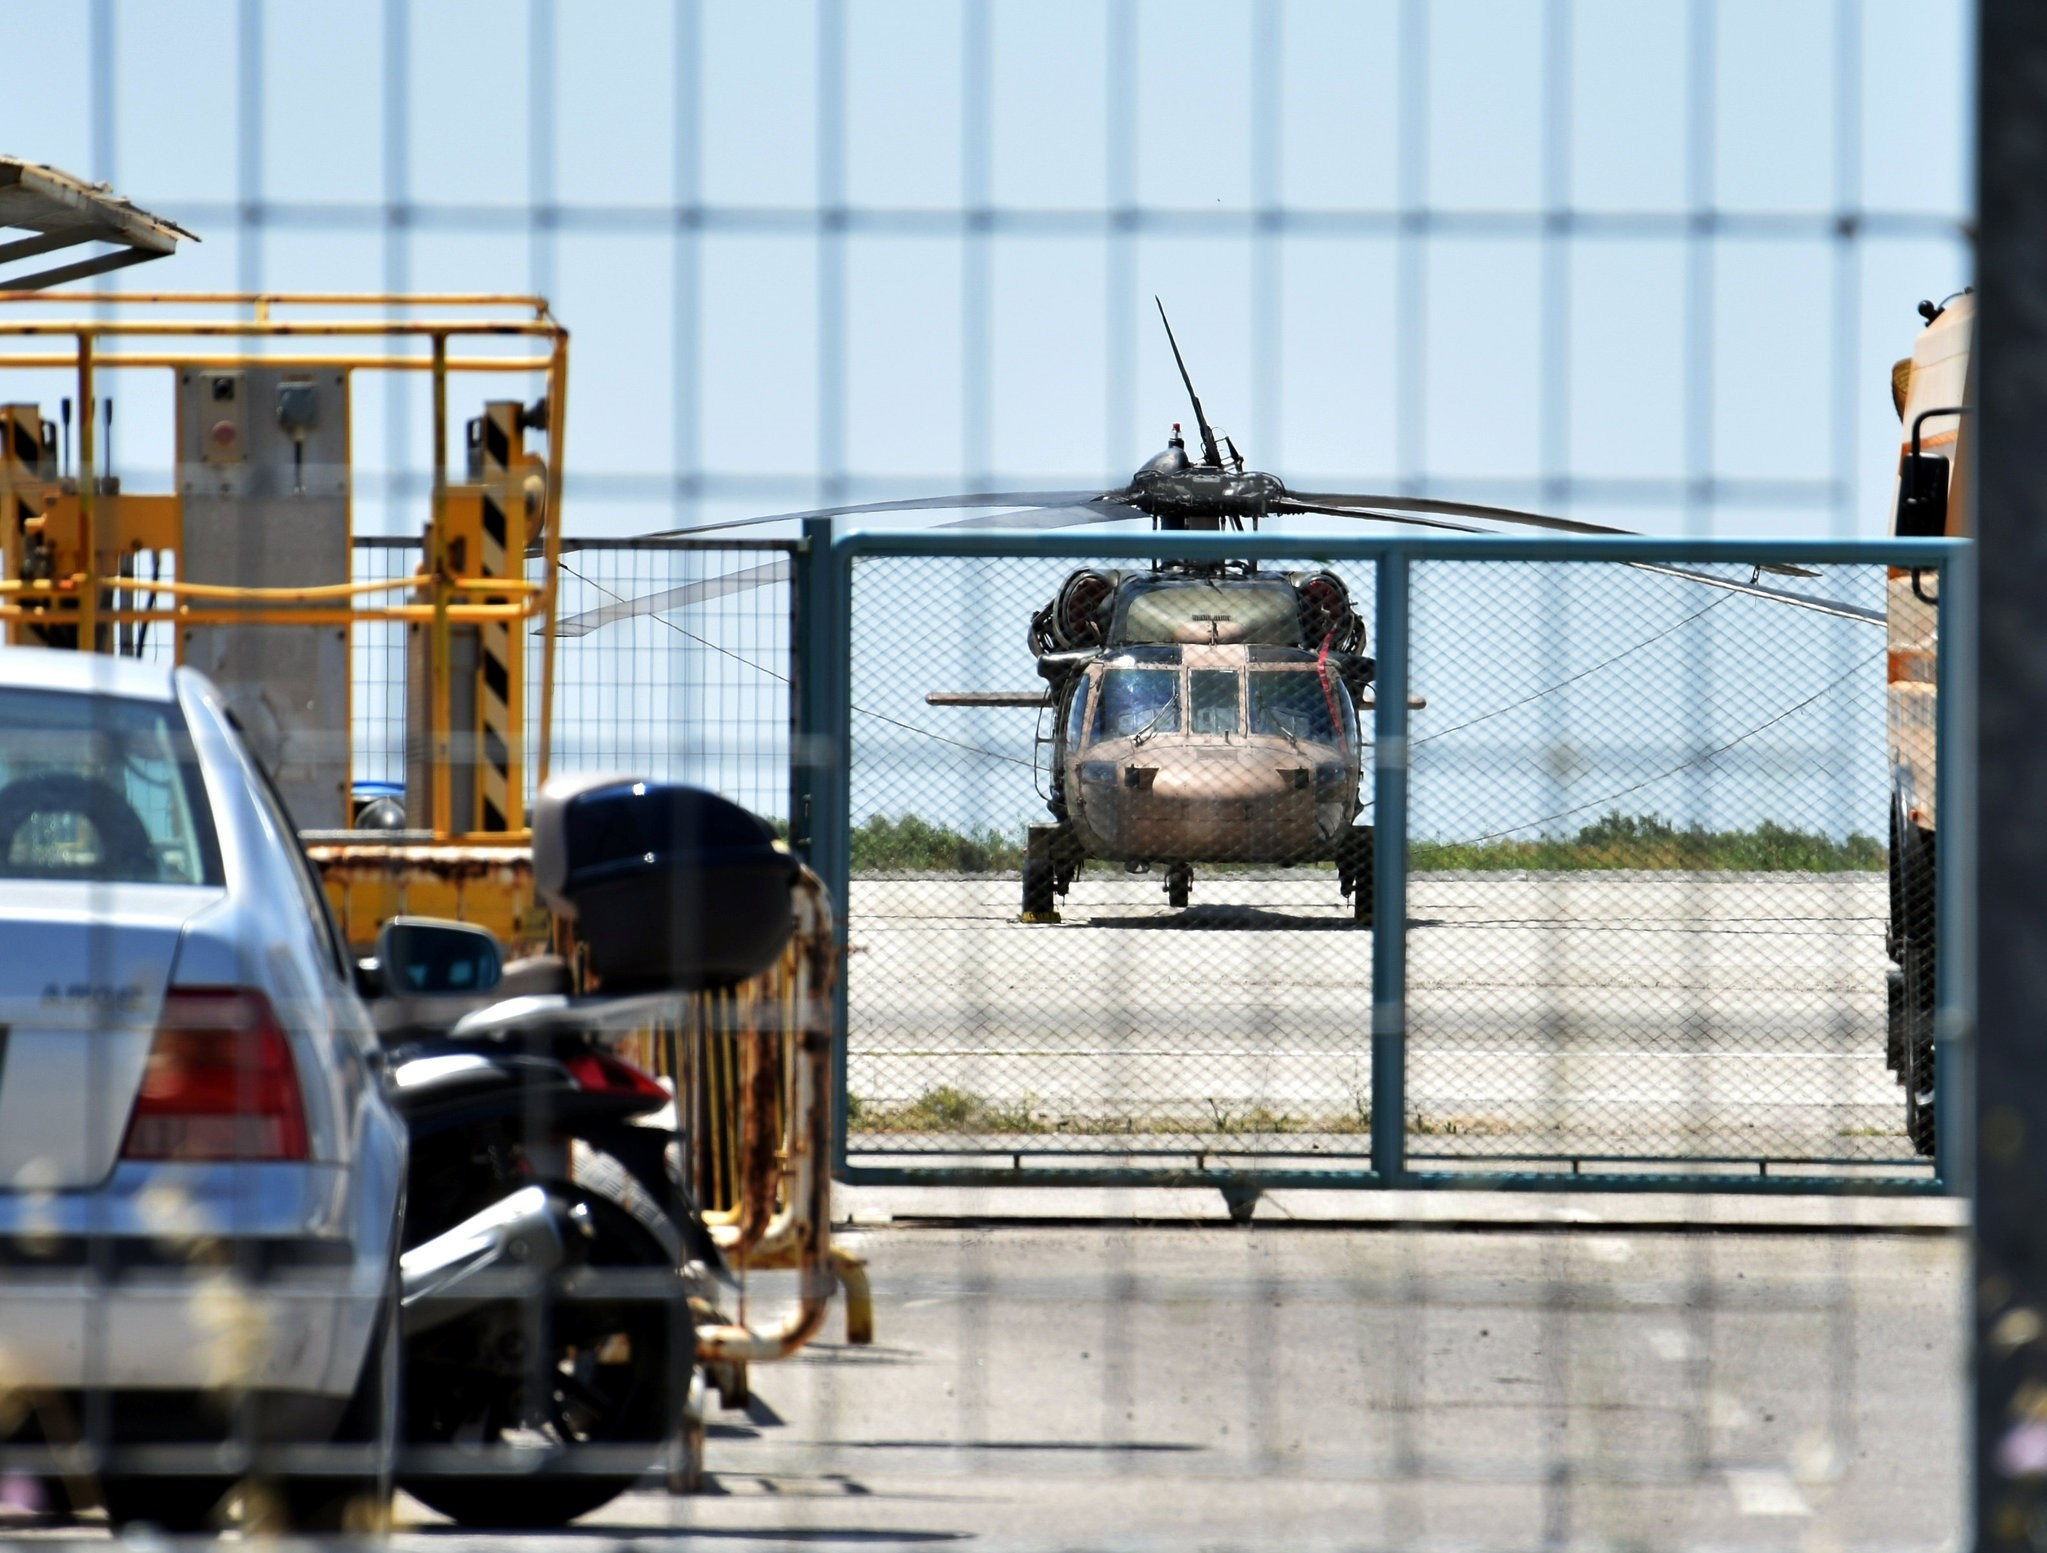 A Turkish military helicopter lands in the northern Greek city of Alexandroupolis with eight men on board who have requested political asylum after the attempted coup in Turkey, July 16, 2016.  (Reuters Photo)